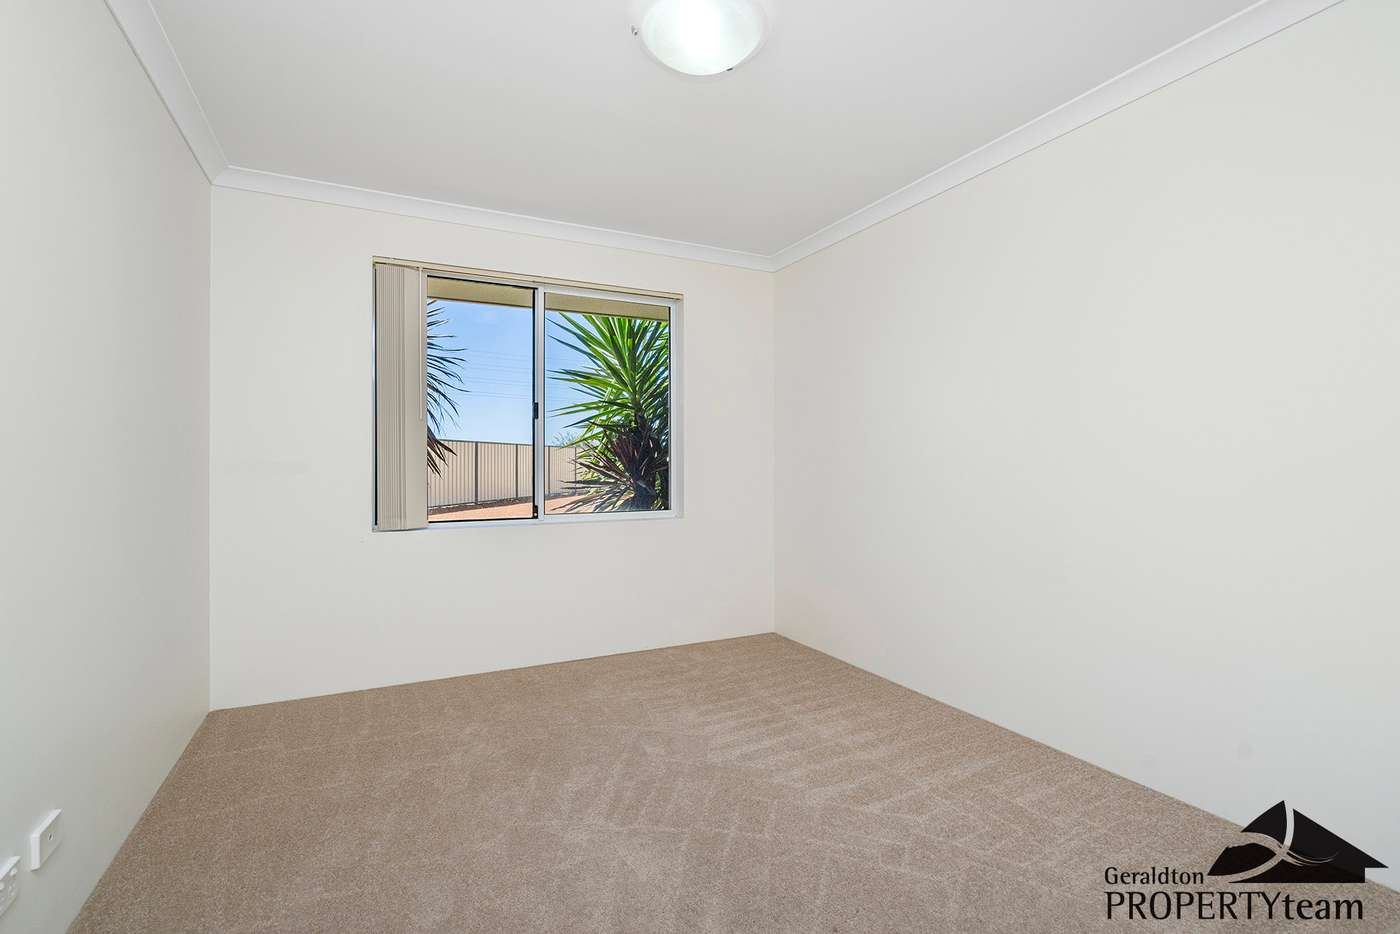 Sixth view of Homely house listing, 4 Bofey Close, Utakarra WA 6530